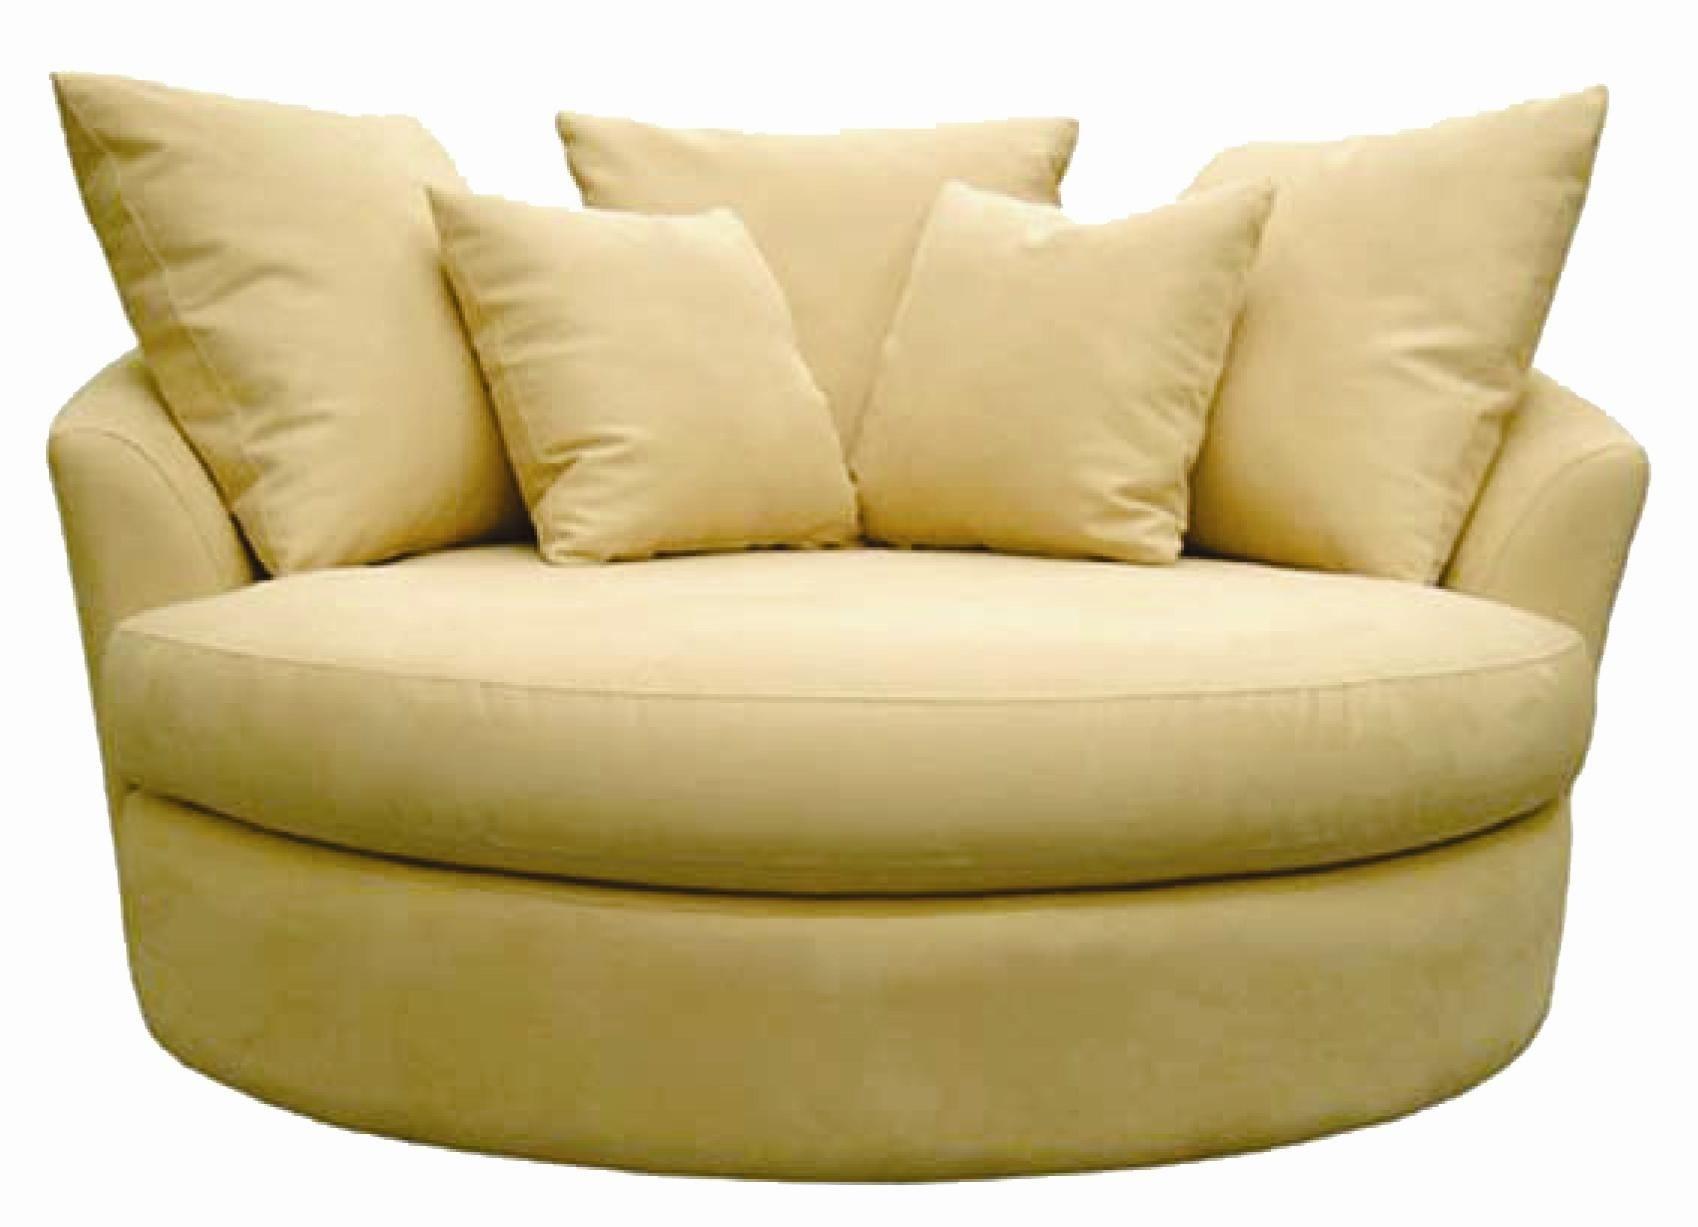 54 Round Sofa Chair Sofa Chair Ebayfind Great Deals On Ebay For Within Big Round Sofa Chairs (Image 1 of 15)